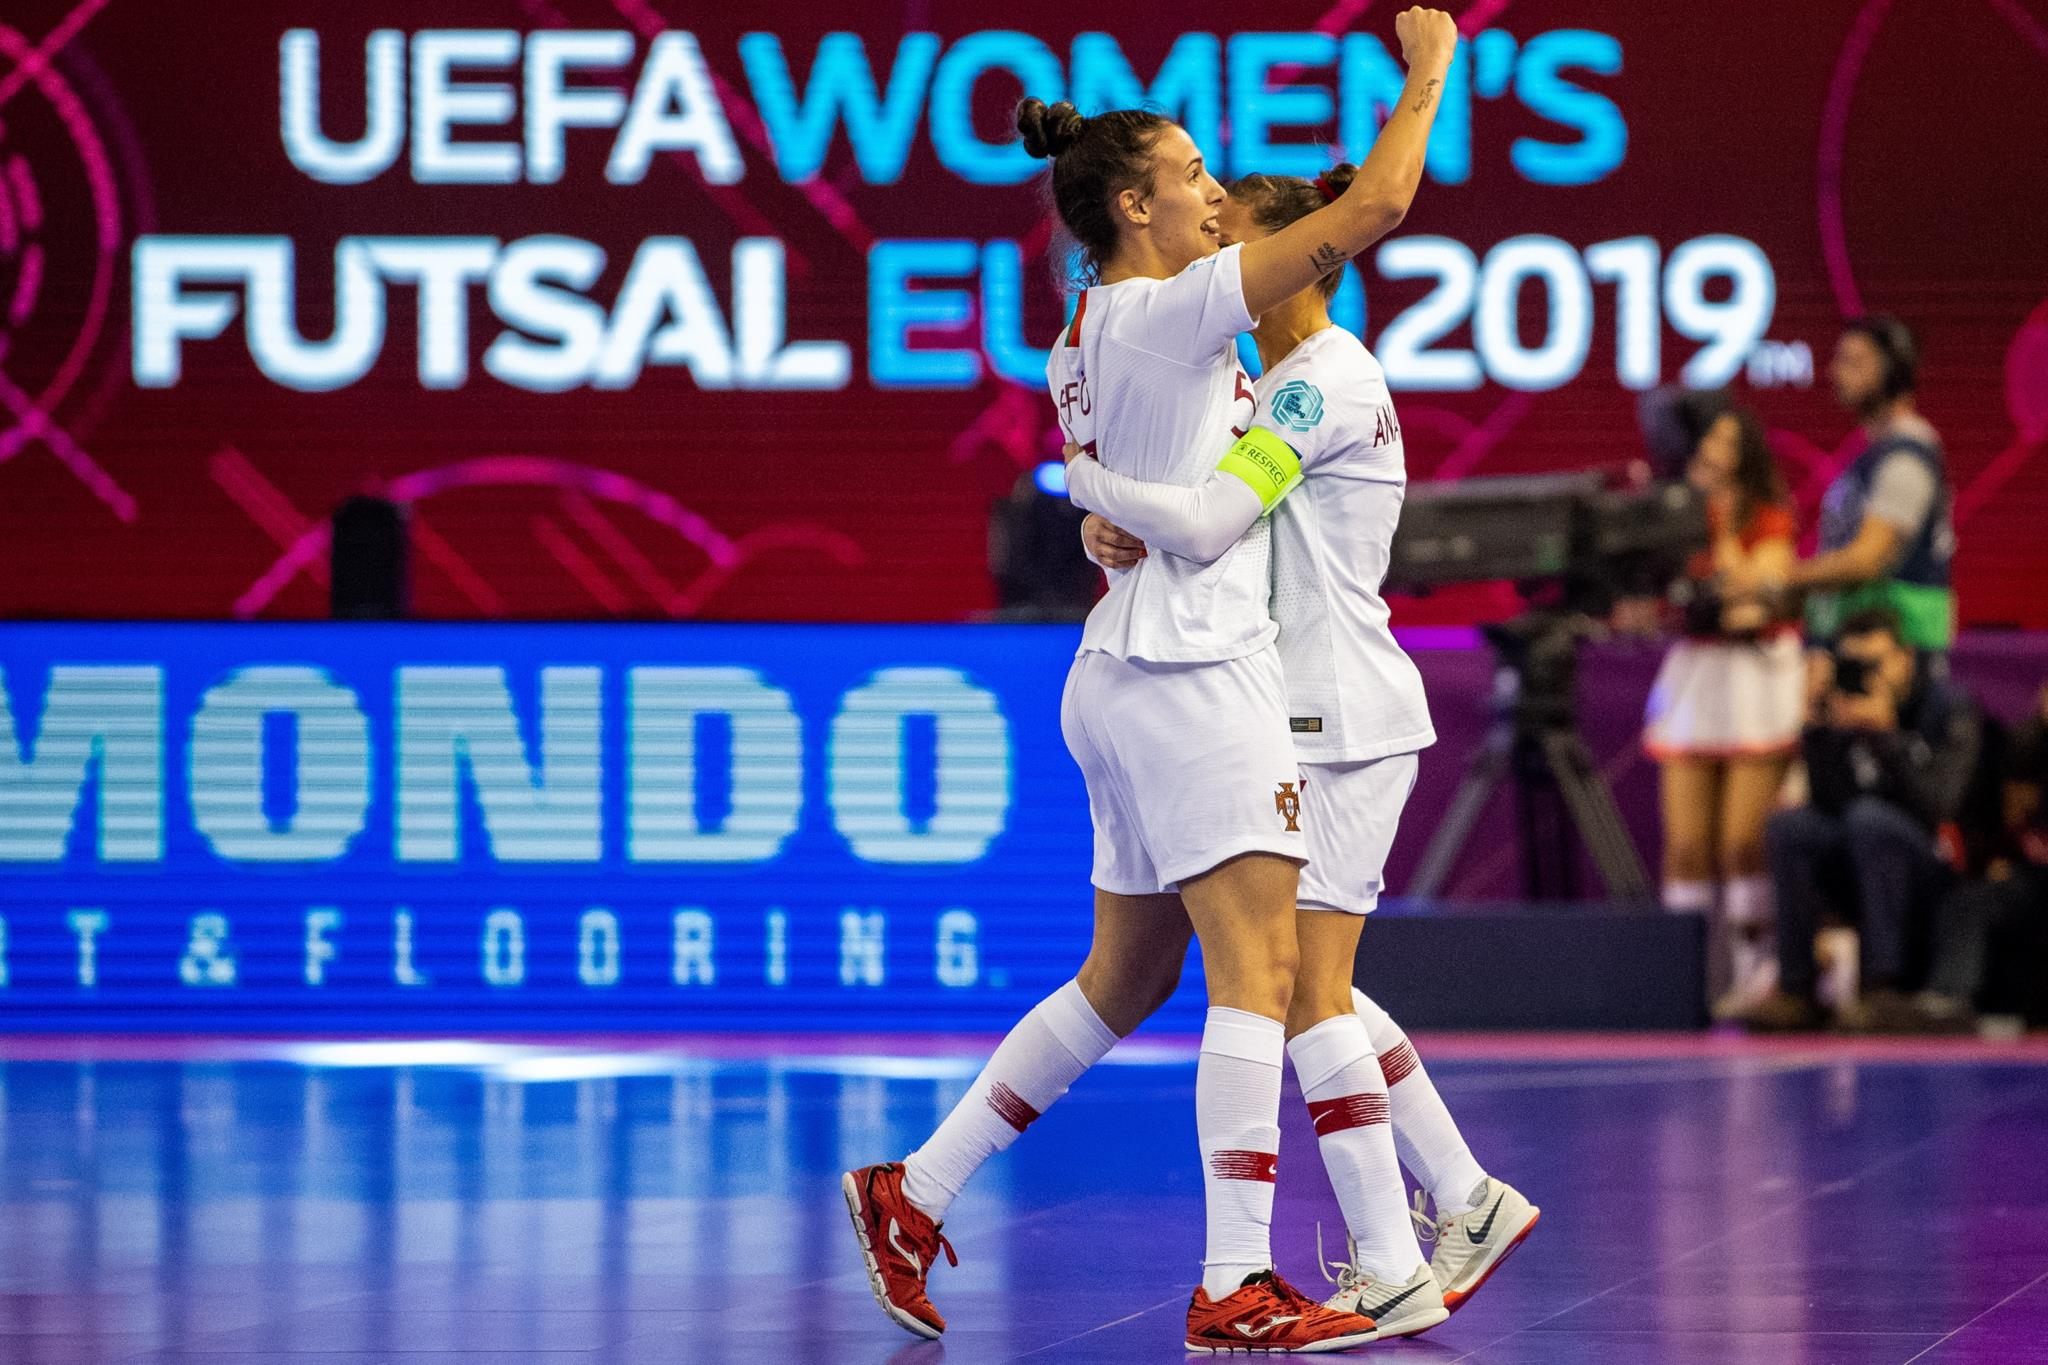 Génio de Fifó e pé quente de Janice guiam Portugal à final do Europeu de  futsal  cb7fcc5ac3831